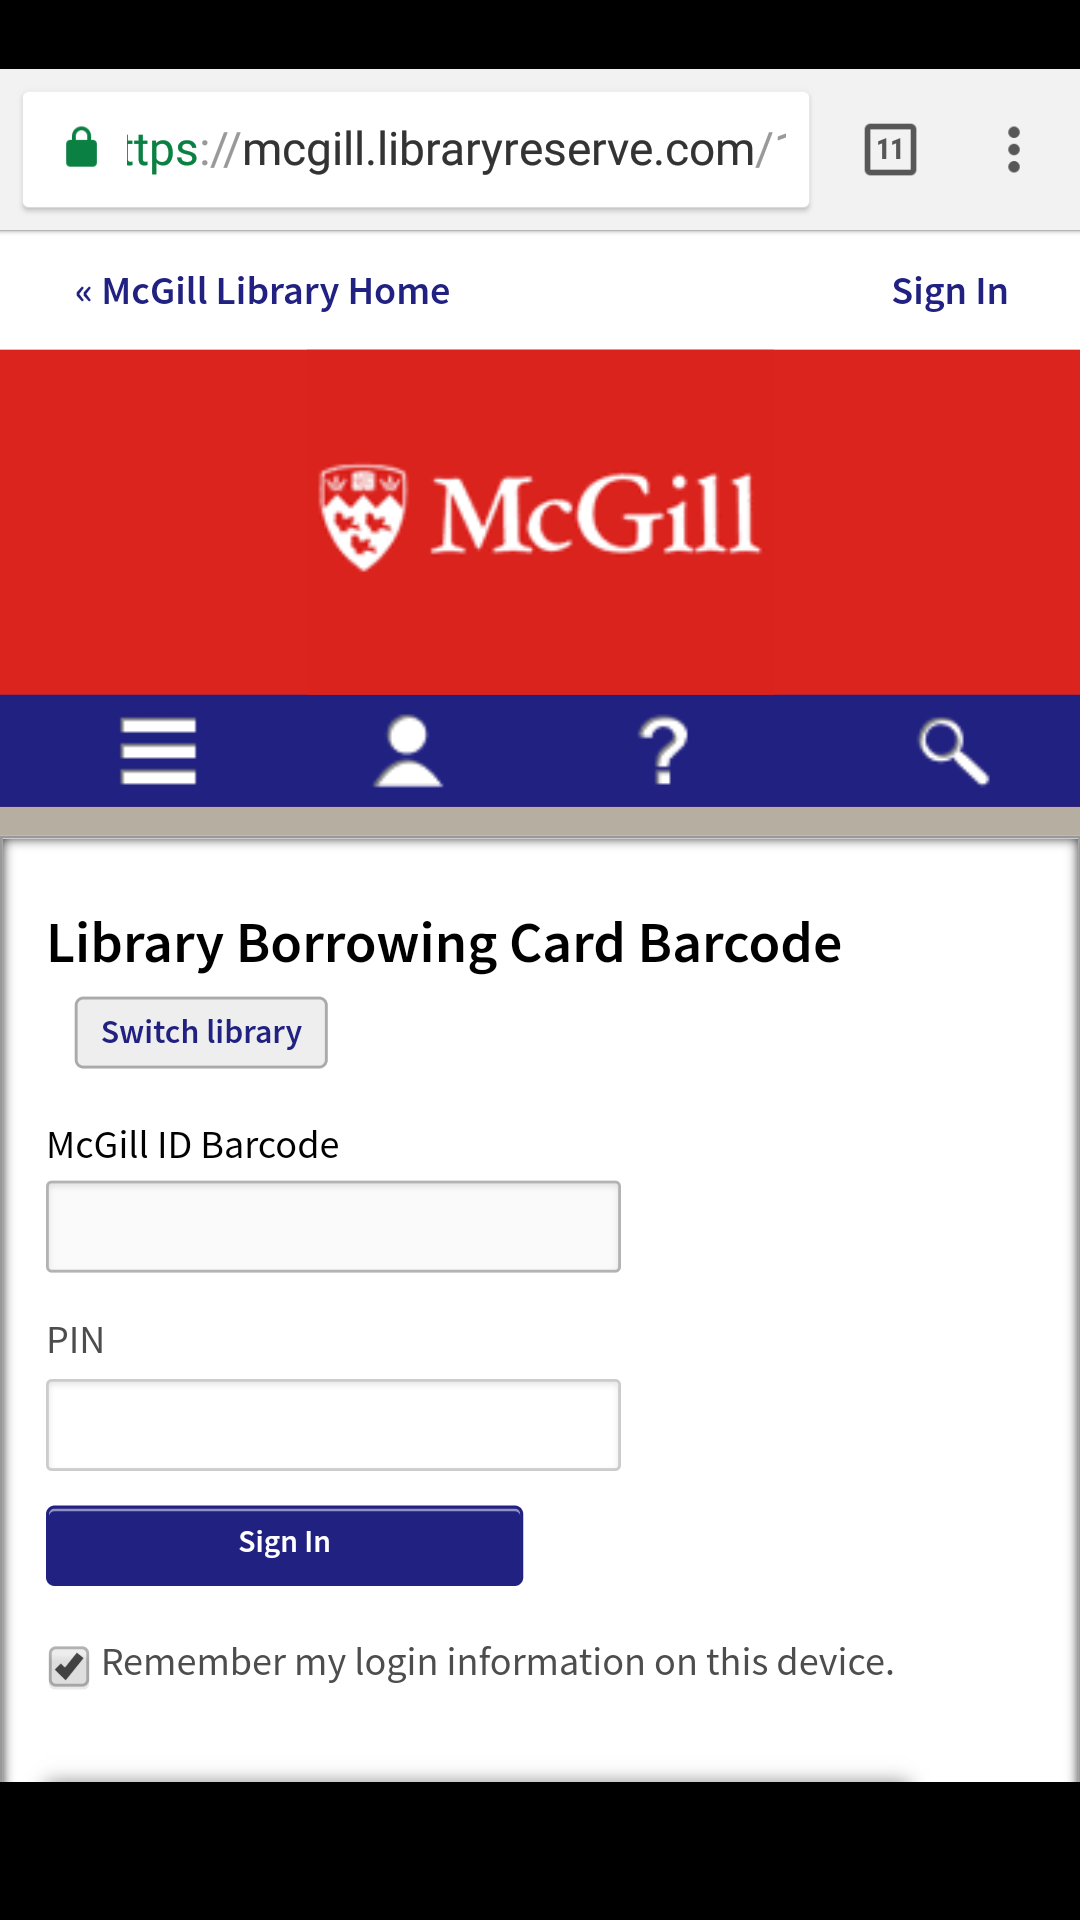 Screenshot on an Android phone showing the Library Borrowing Card Barcode sign-in page.